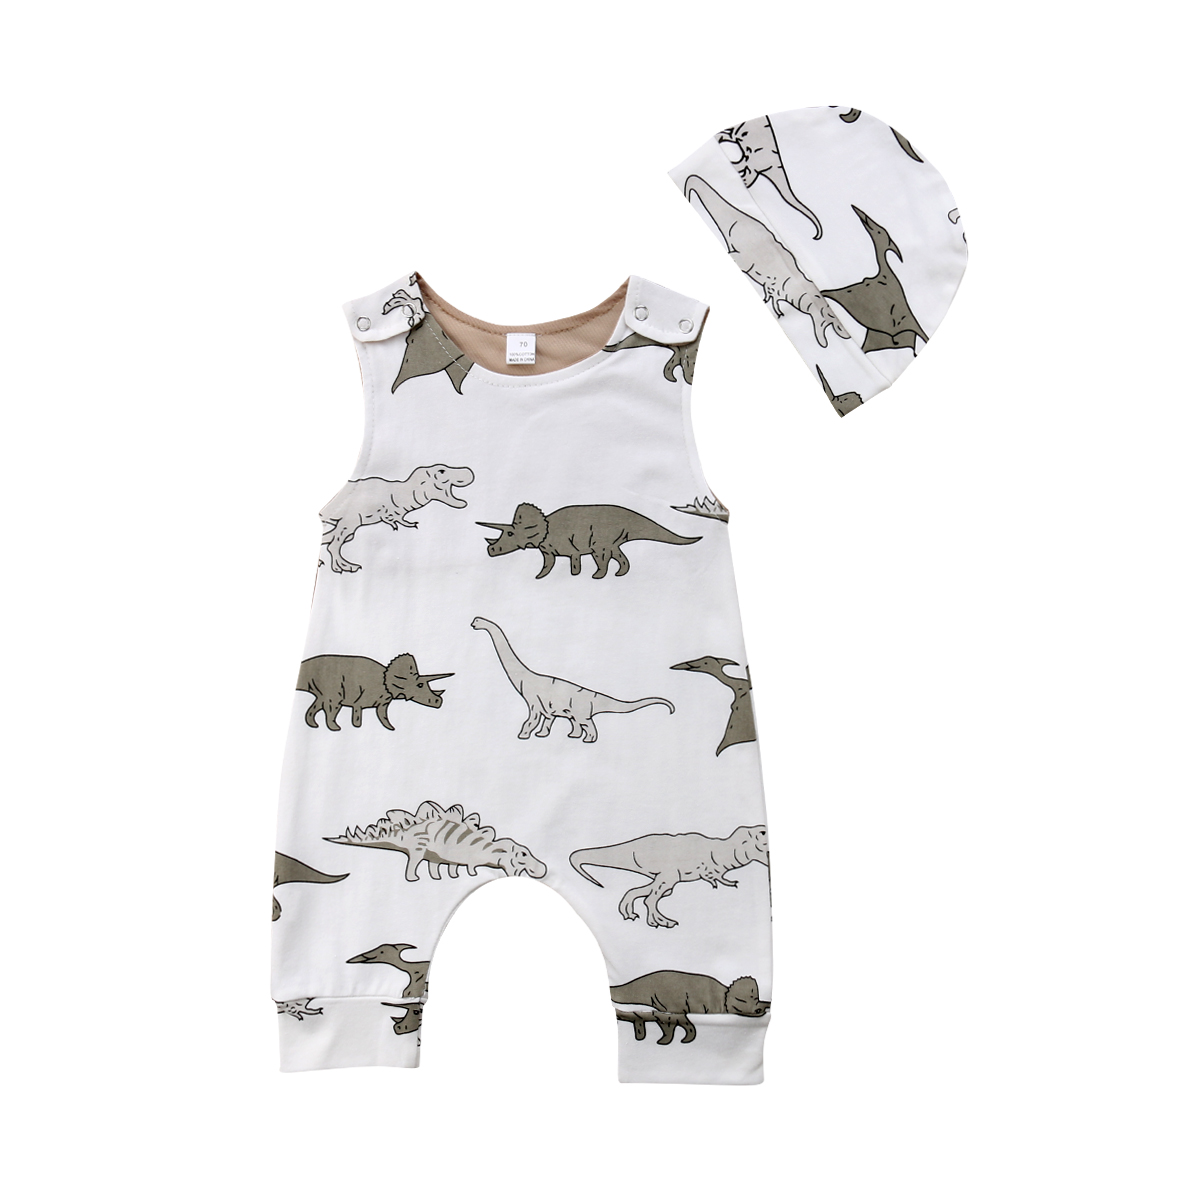 Baby Boy Girl Cotton Romper 2pcs Newborn Child Clothes Sleeveless Cute Outfits Dino Print Jumpsuit Playsuit Summer Casual New summer 2017 baby kids girl boy infant summer sleeveless romper harlan jumpsuit clothes outfits 0 24m